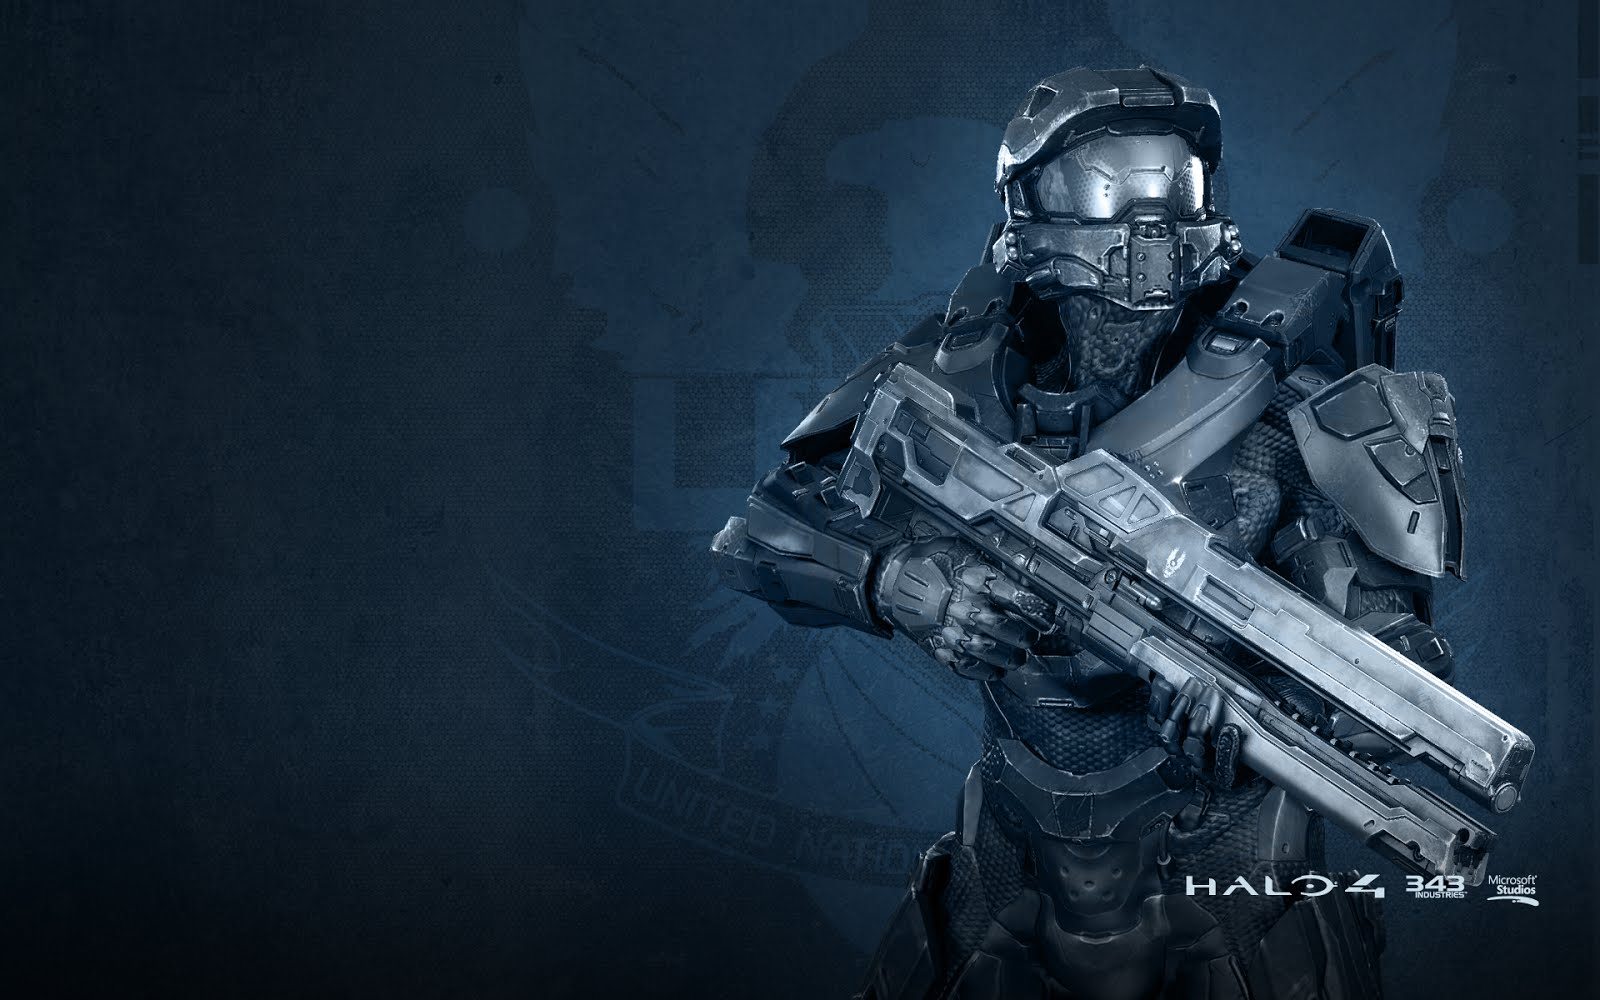 6 Halo 4 high quality wallpapers